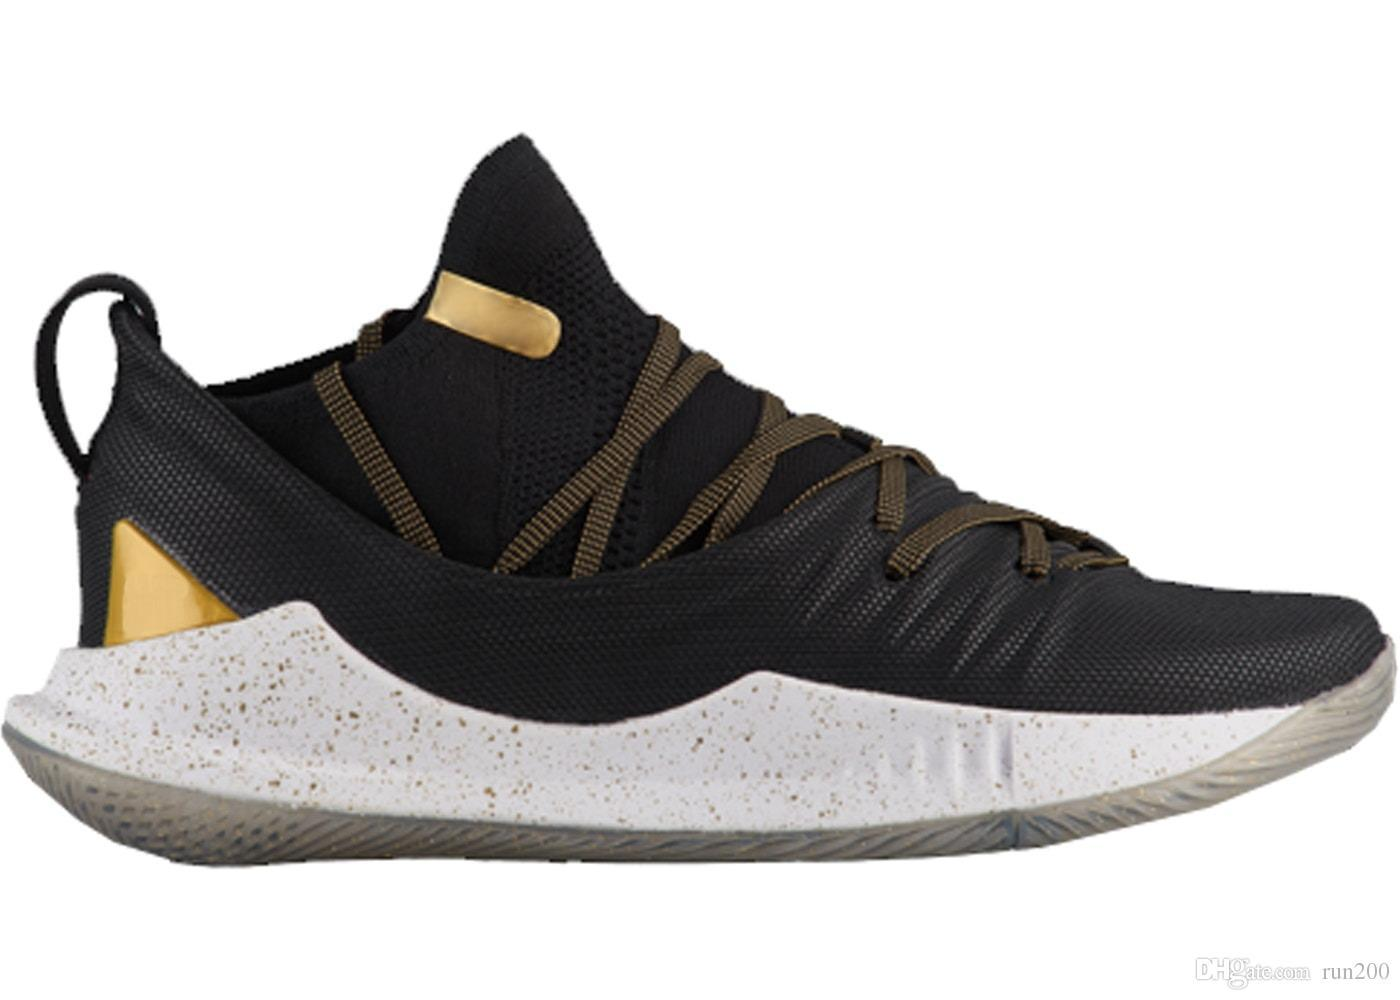 Curry Takeover Black Gold Shoes For Sale Quality Stephen Curry Shoes Store  Size Shoes Uk Pumps Shoes From Factoryoutlet006 e6d59f14d70a